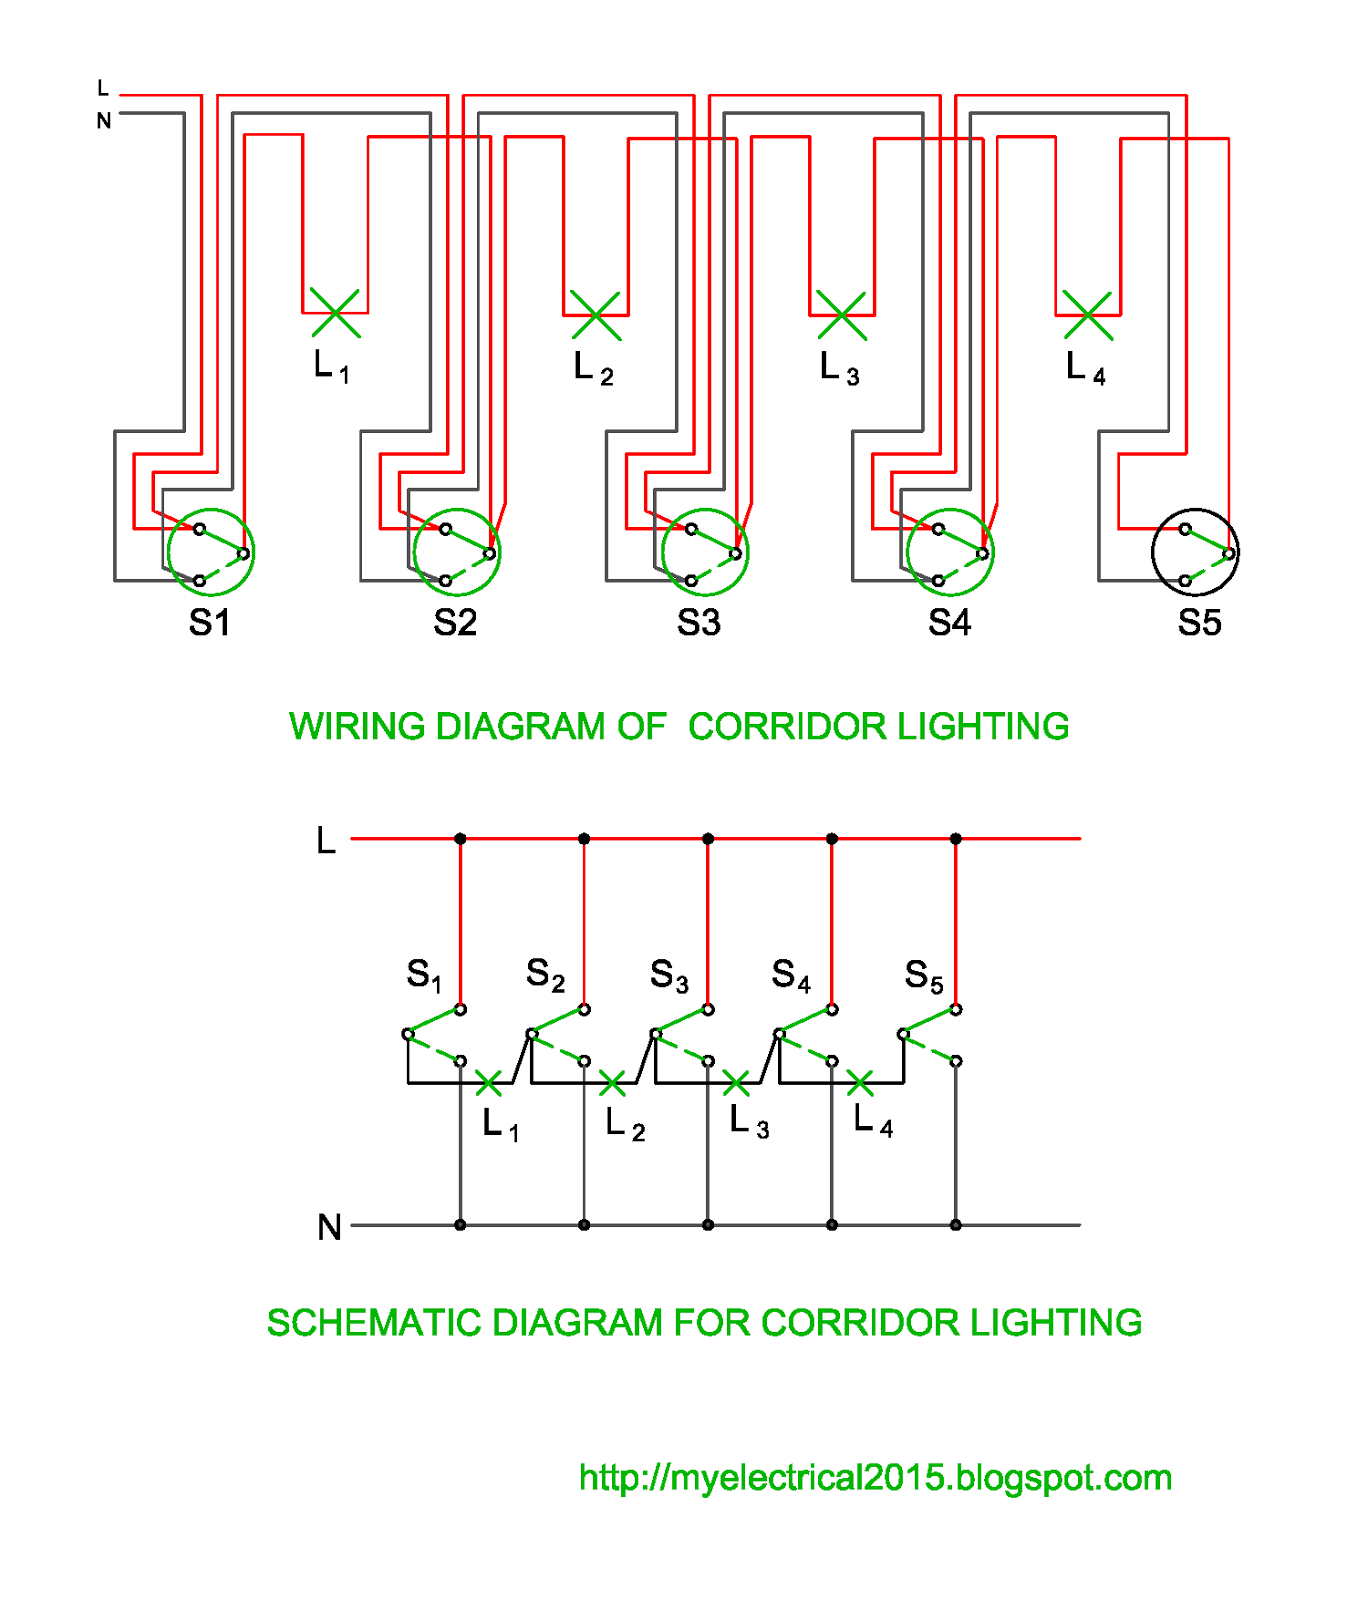 hight resolution of wiring and schematic diagram of corridor lighting electrical corridor light wiring diagram